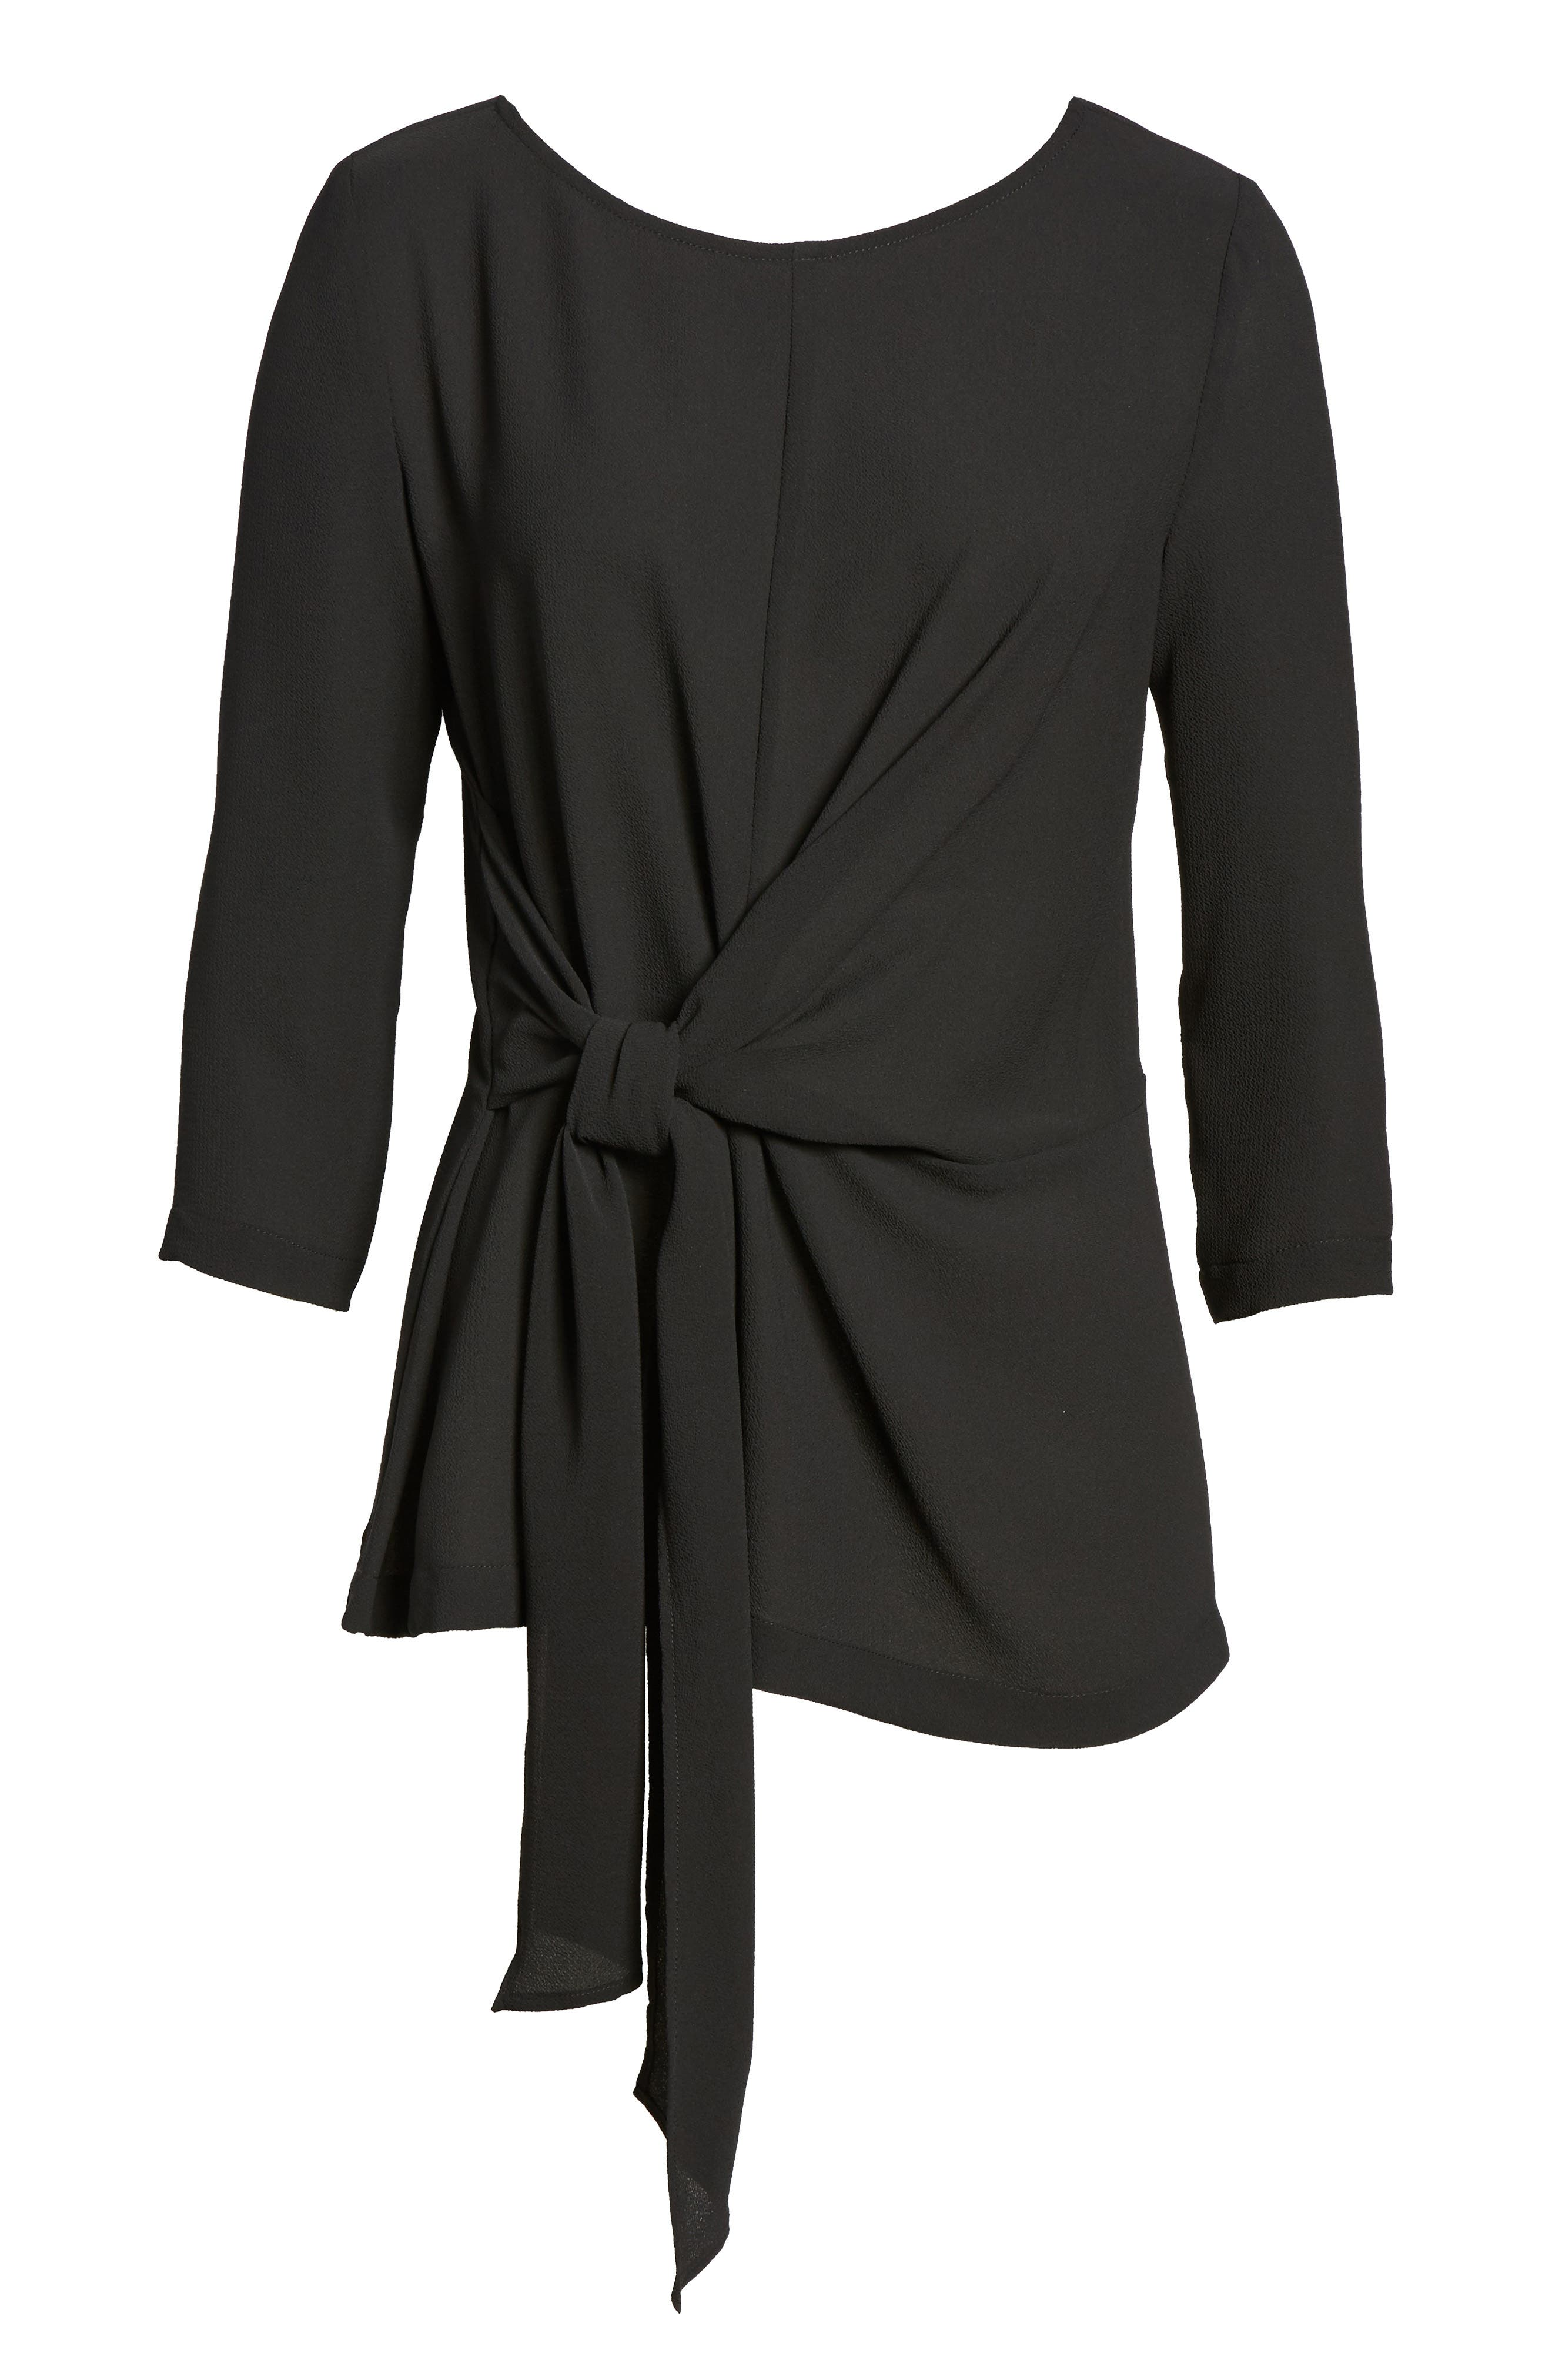 GIBSON,                             Tie Front Crepe Top,                             Alternate thumbnail 6, color,                             001